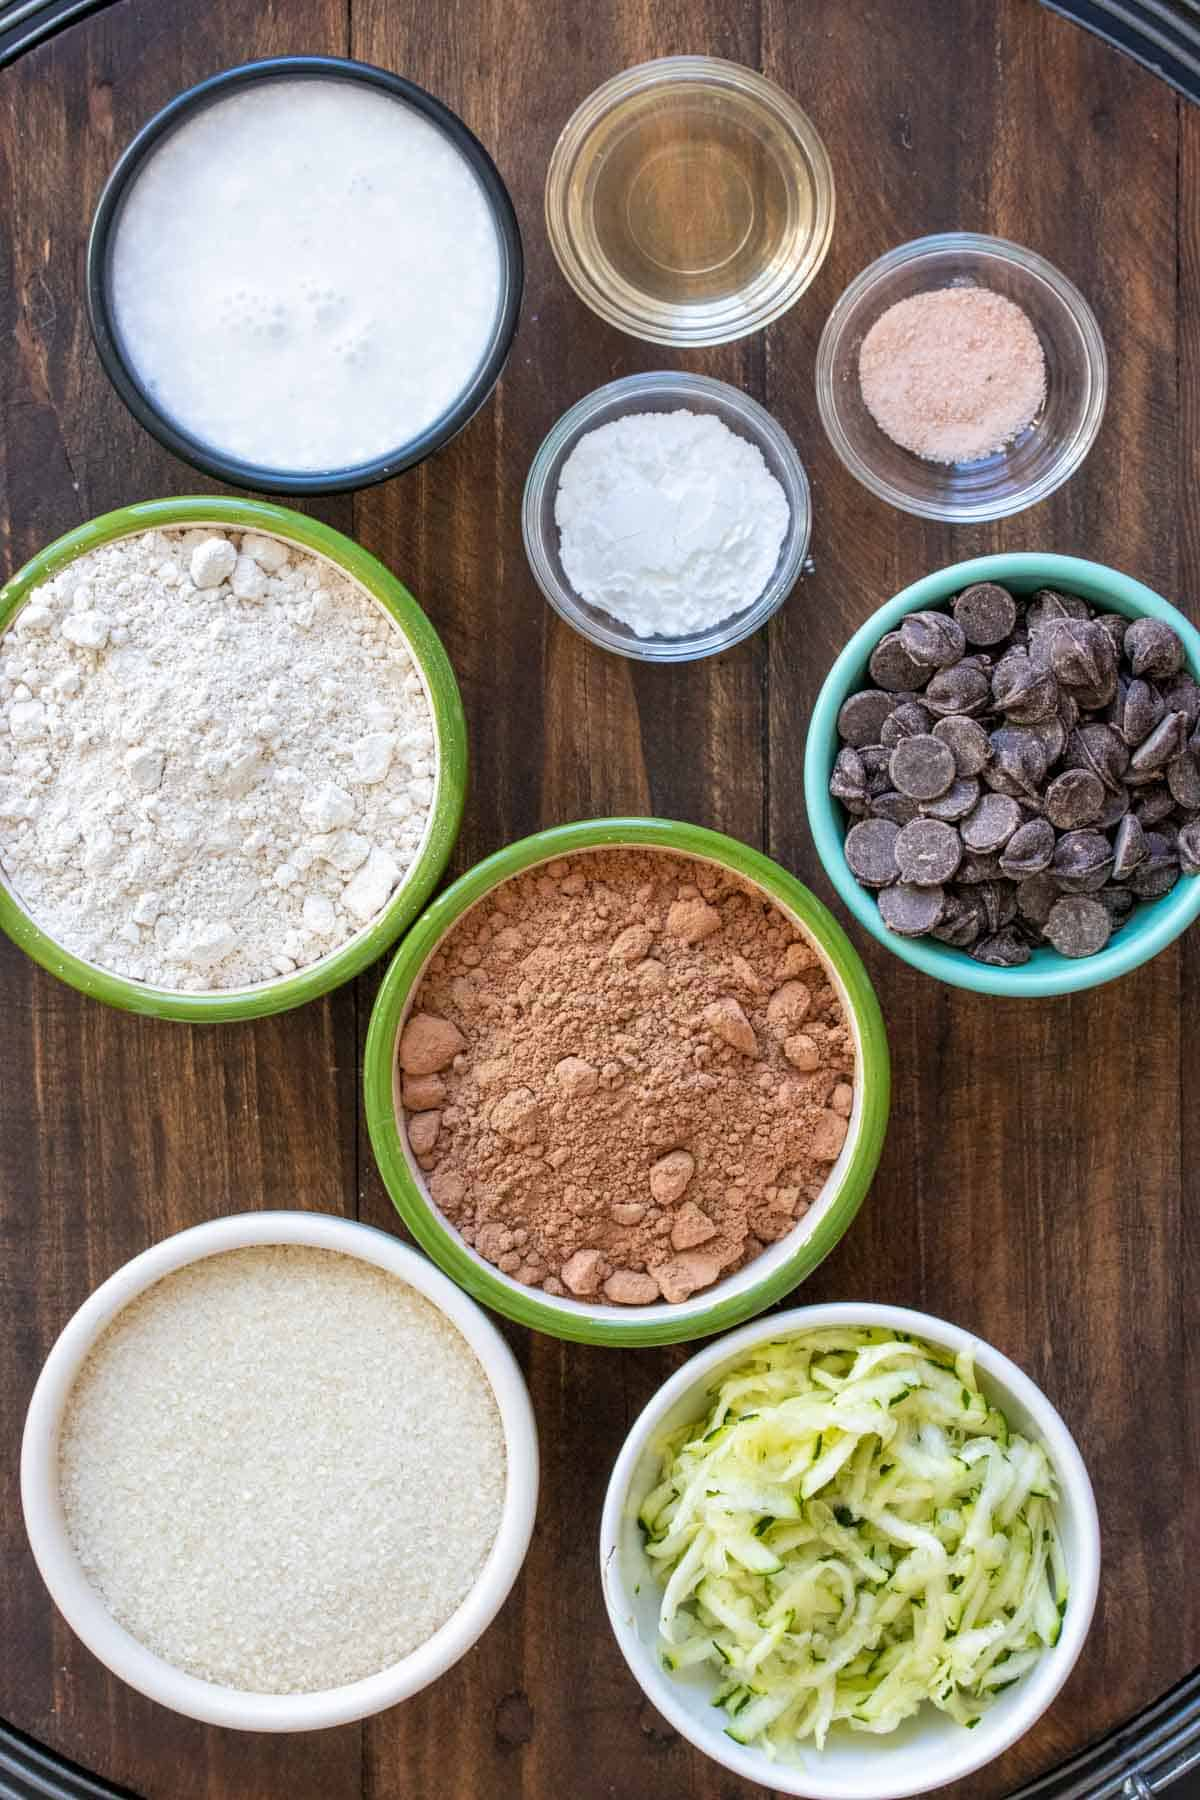 Bowls in different colors and sizes with ingredients to make a chocolate zucchini cake